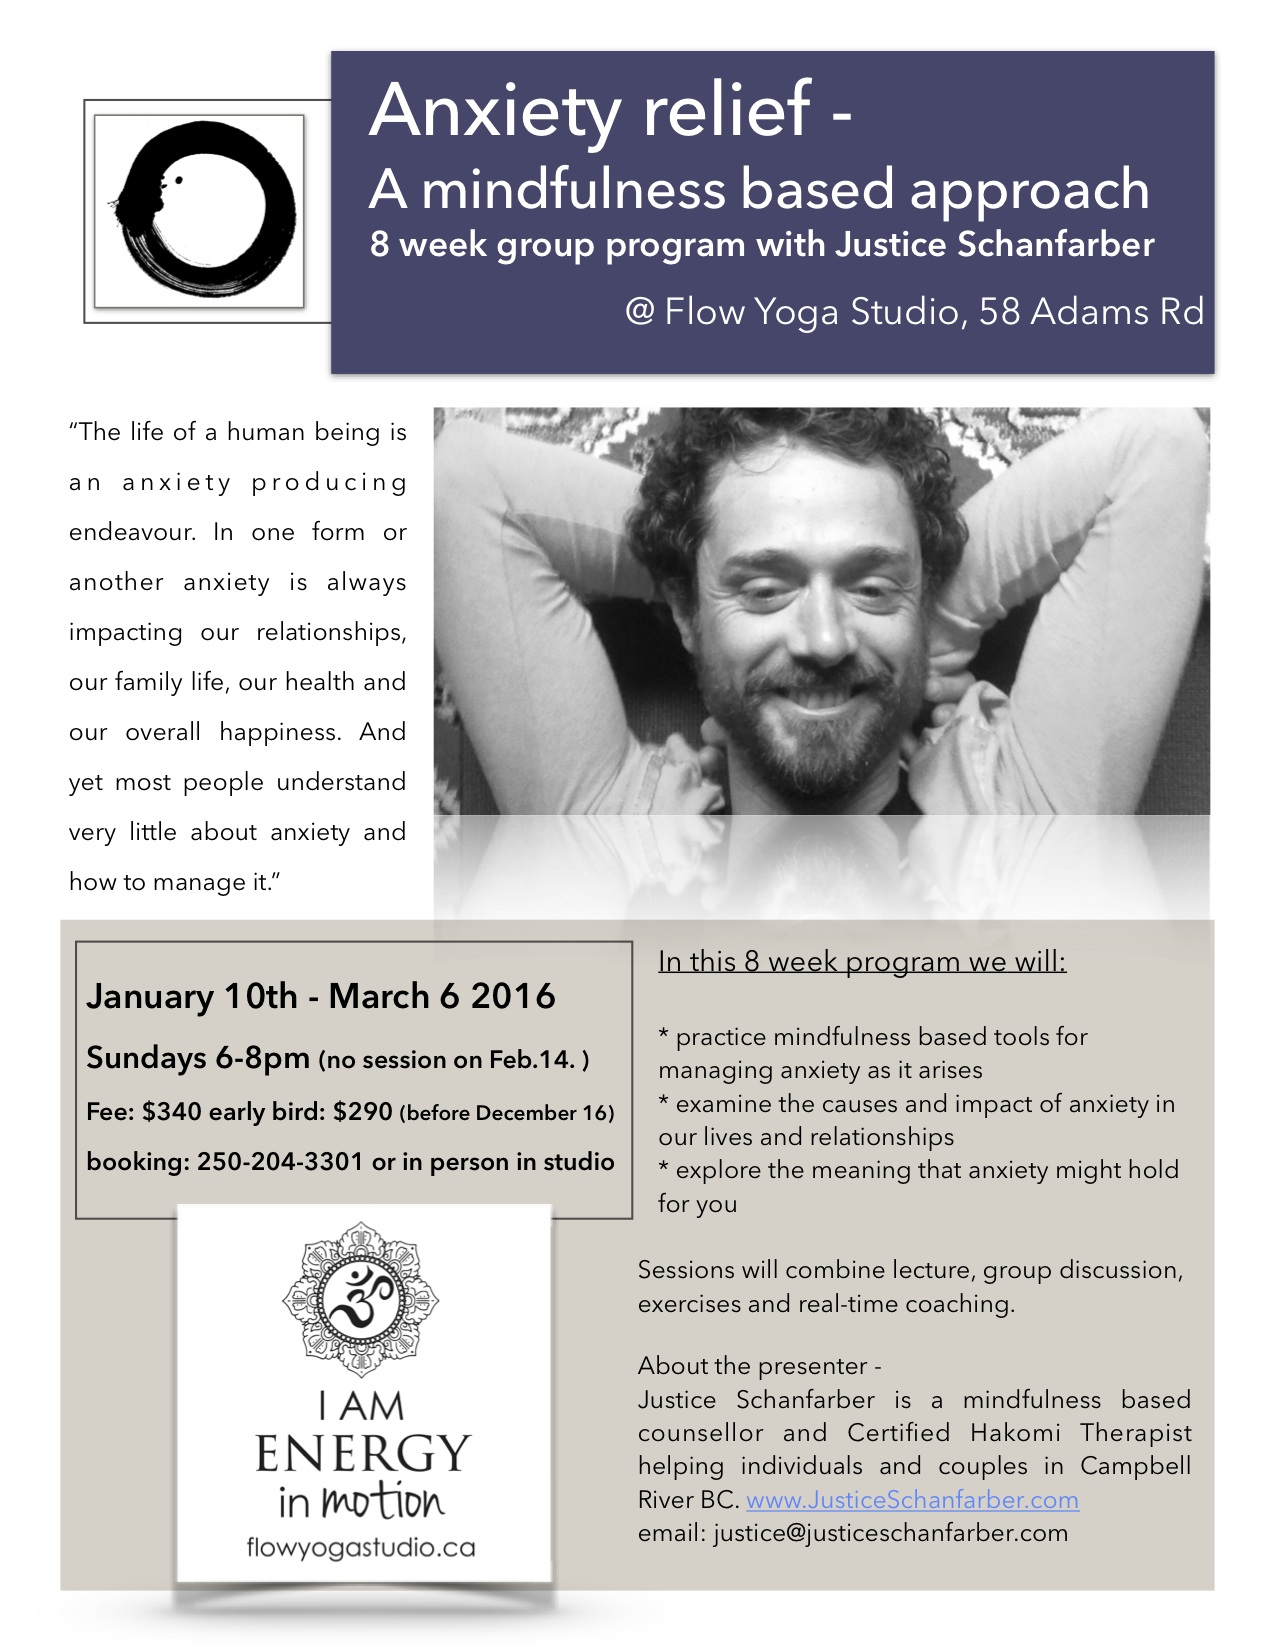 Anxiety relief - A mindfulness based approach 8-week group program